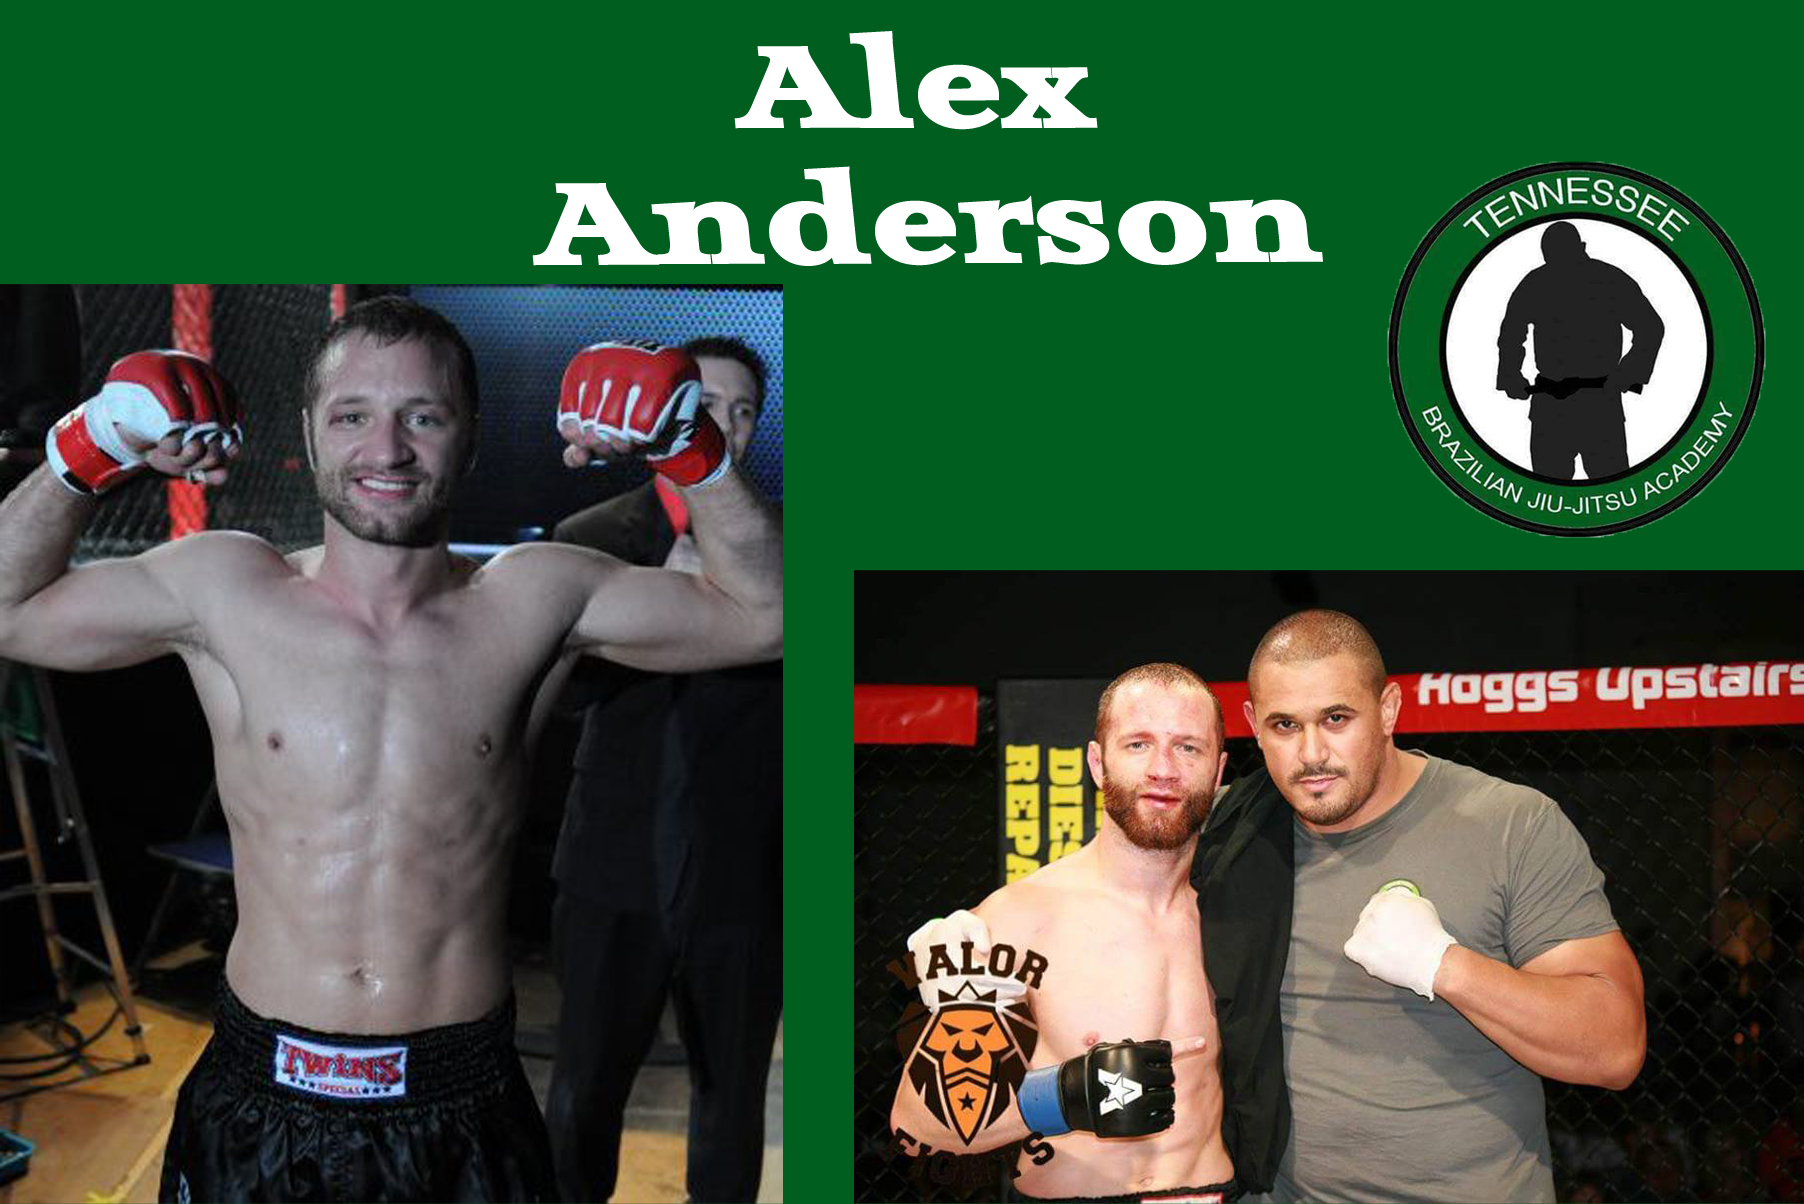 Alex Anderson - Alex excelled in amateur wrestling in high school, before directing his athletic focus towards Mixed Martial Arts. He graduated from Middle Tennessee State University with a B.S. in Health and Human Performance. Alex is a 3x Mixed Martial Arts amateur champion, amassing a record of ten wins and three losses, finishing seven of his opponents inside the distance. He has trained with several active UFC fighters and currently trains at TBJJA Murfreesboro, where he is preparing for his professional debut.